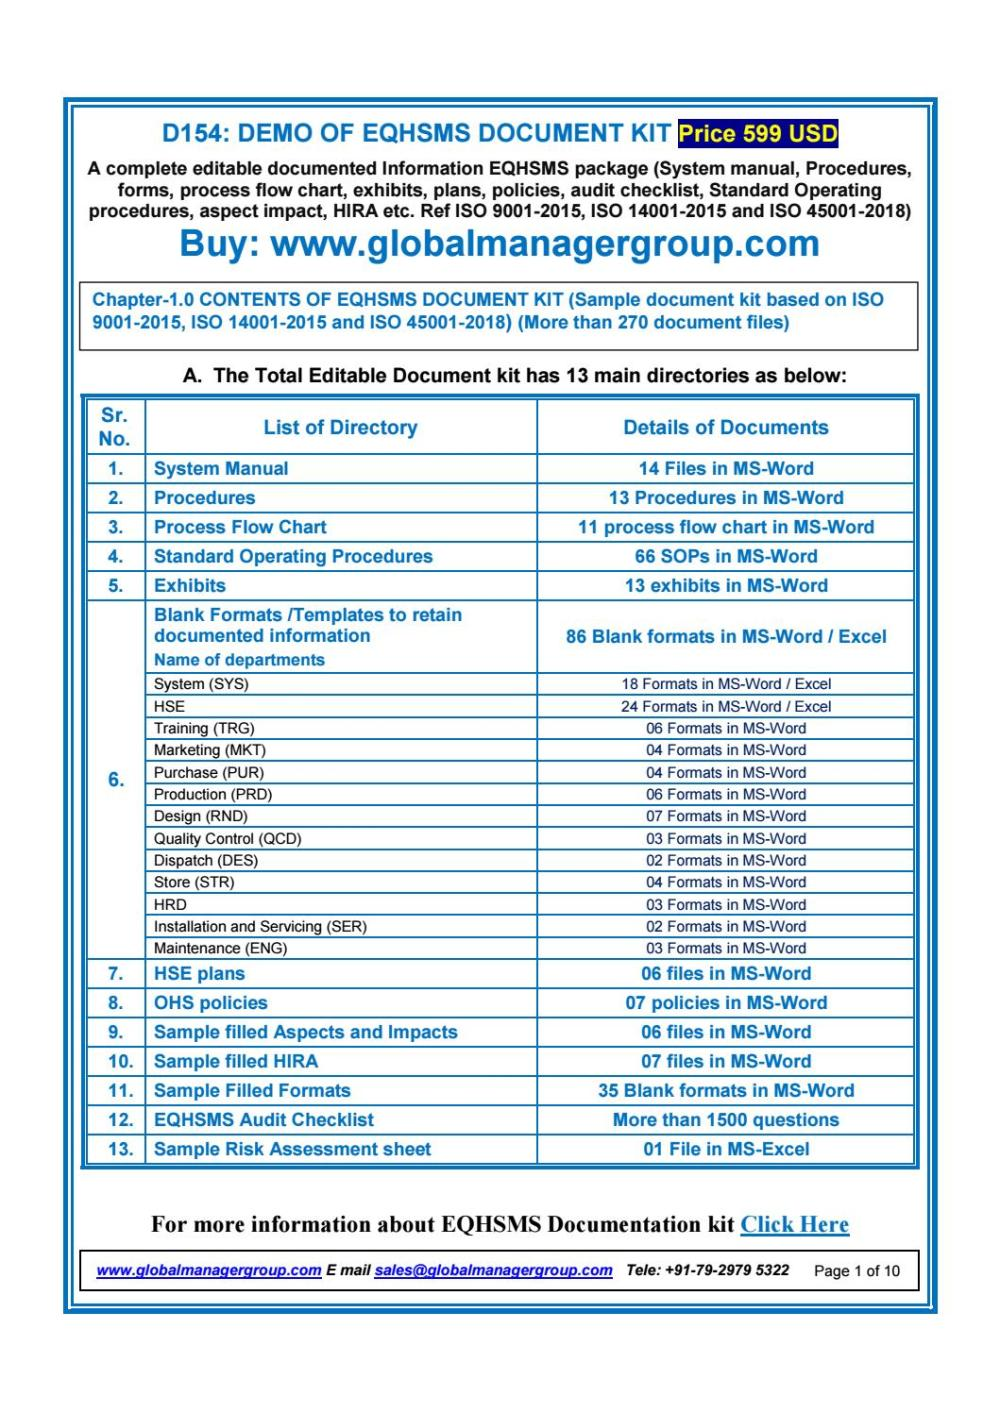 medium resolution of eqhsms documents with iso 9001 2015 iso 14001 2015 iso 45001 2018 requirements by global manager group issuu